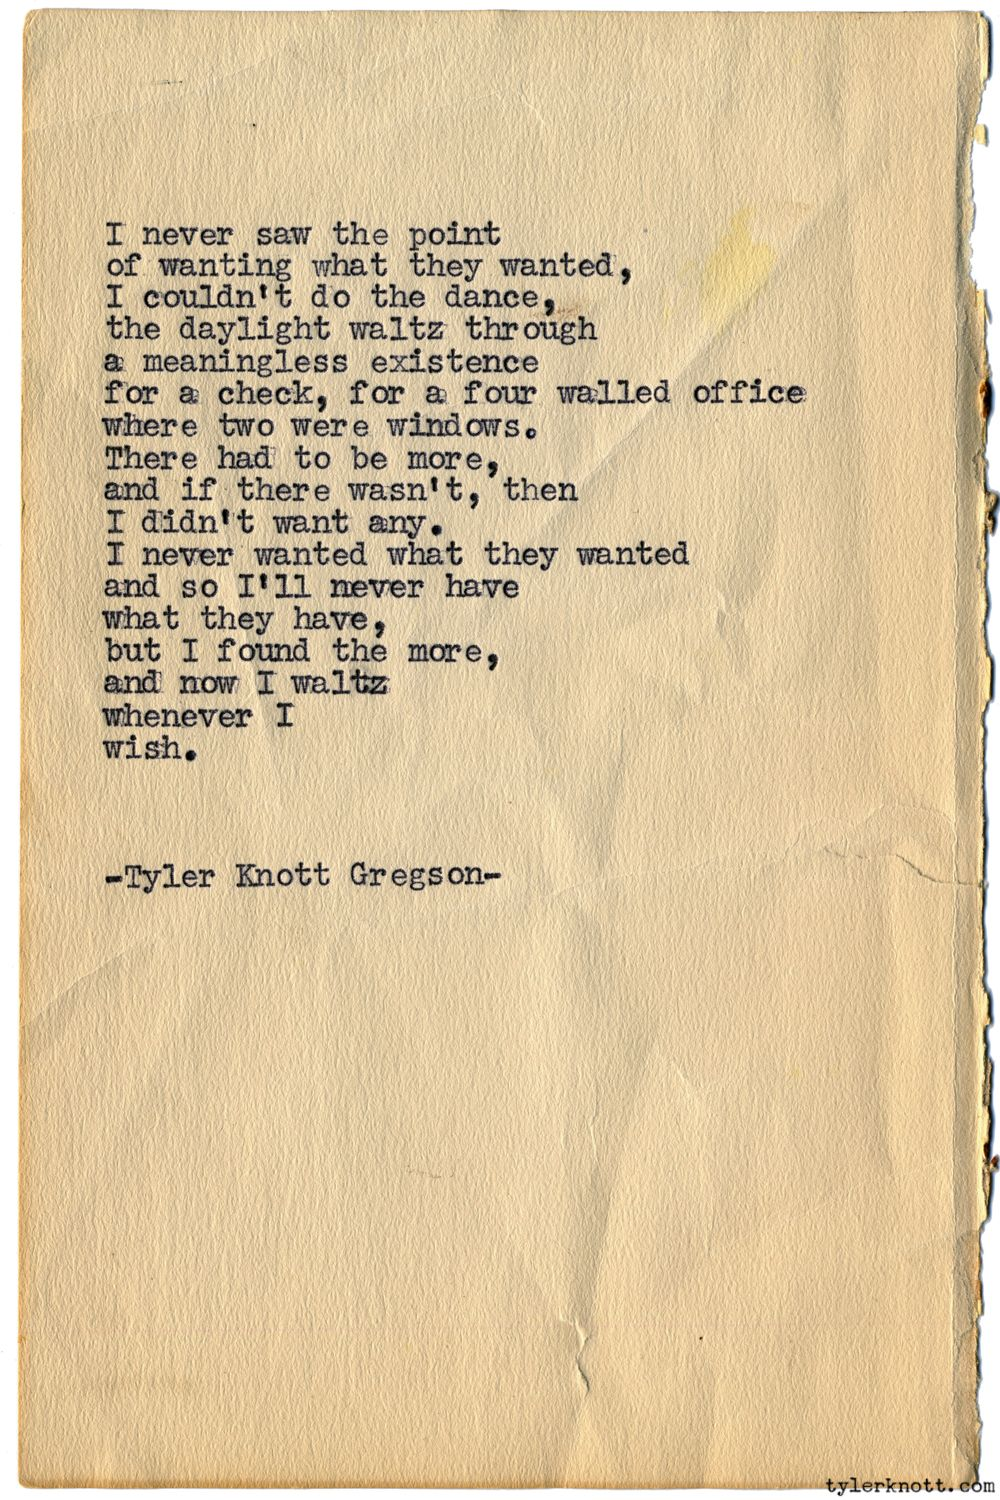 Typewriter Series 1113 By Tyler Knott Gregson Chasers Of The